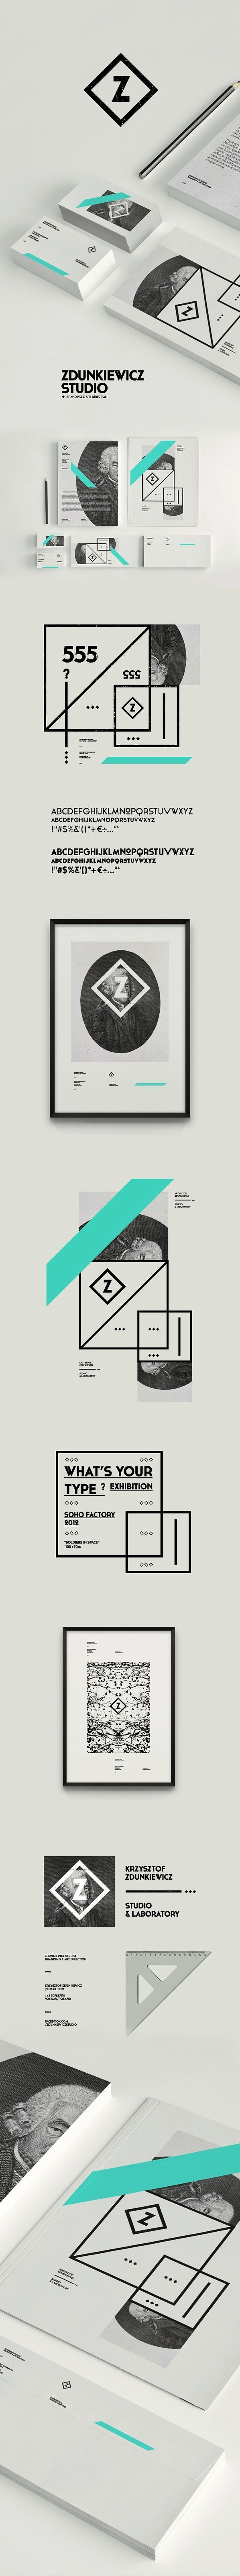 13 best ae images on pinterest graph design posters and graphics